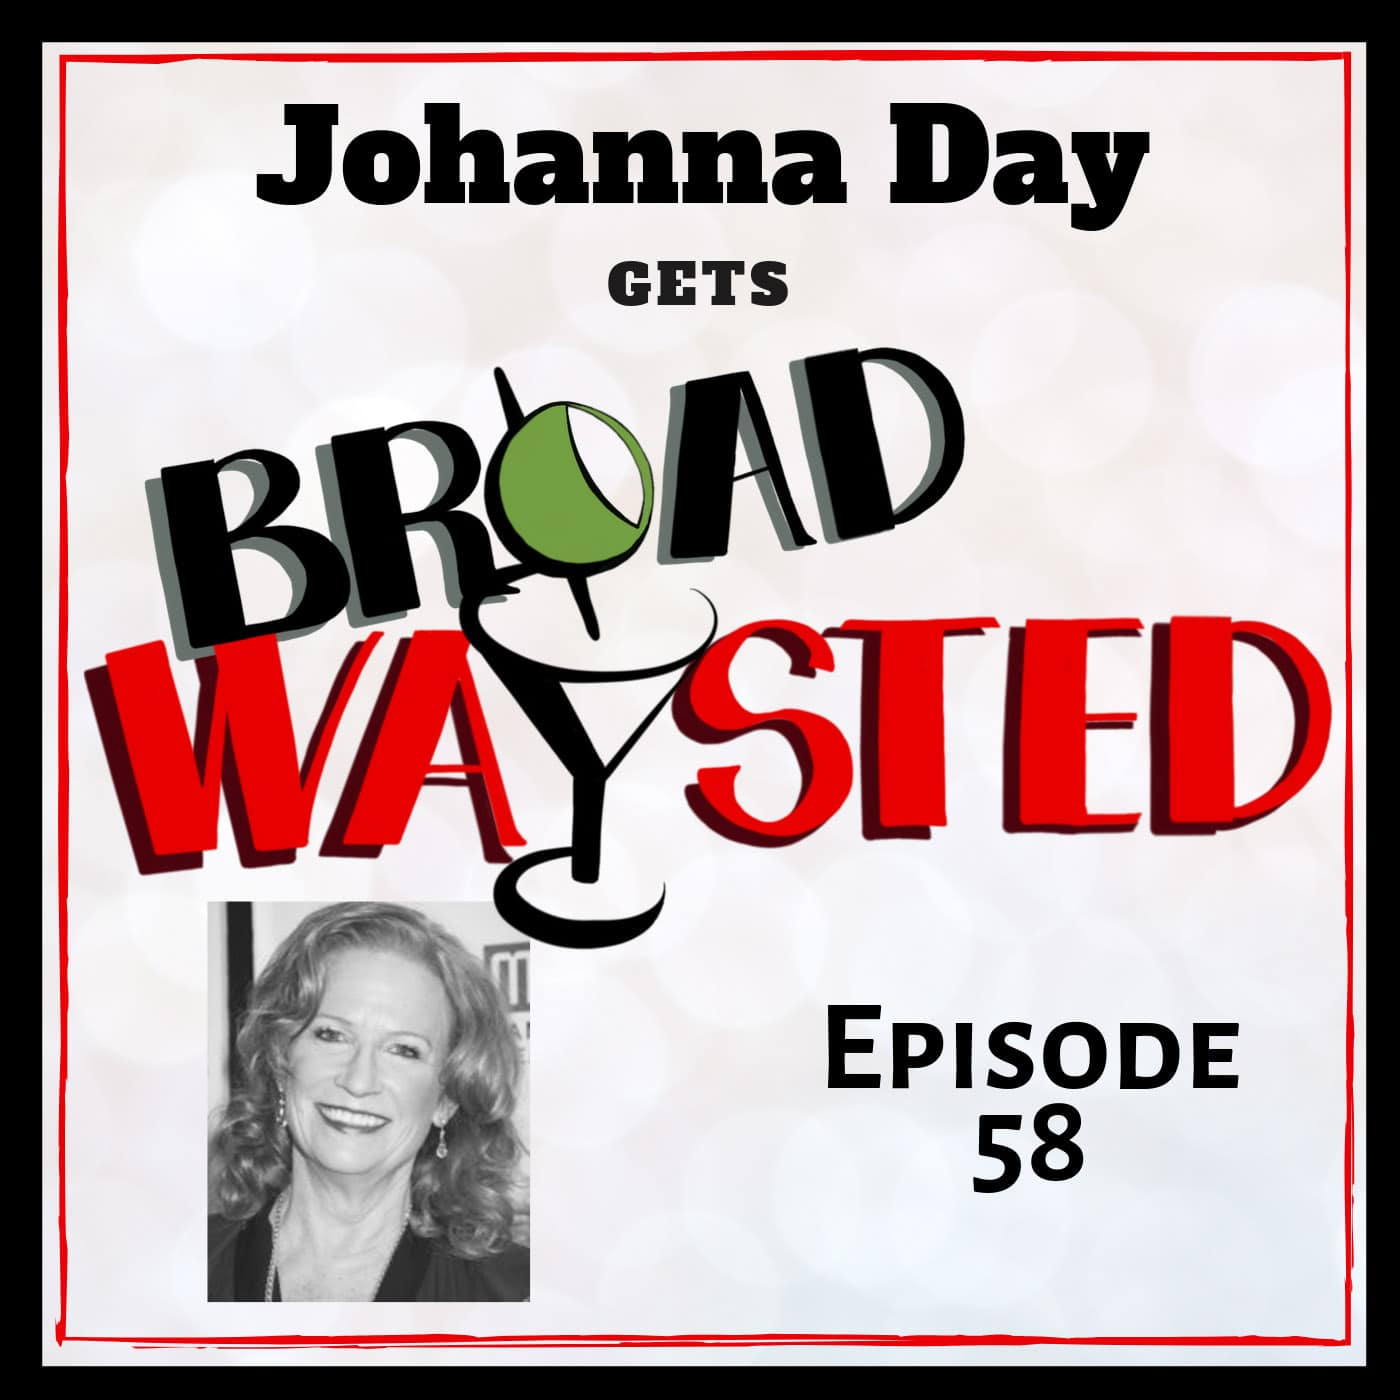 Broadwaysted Ep 58 Johanna Day